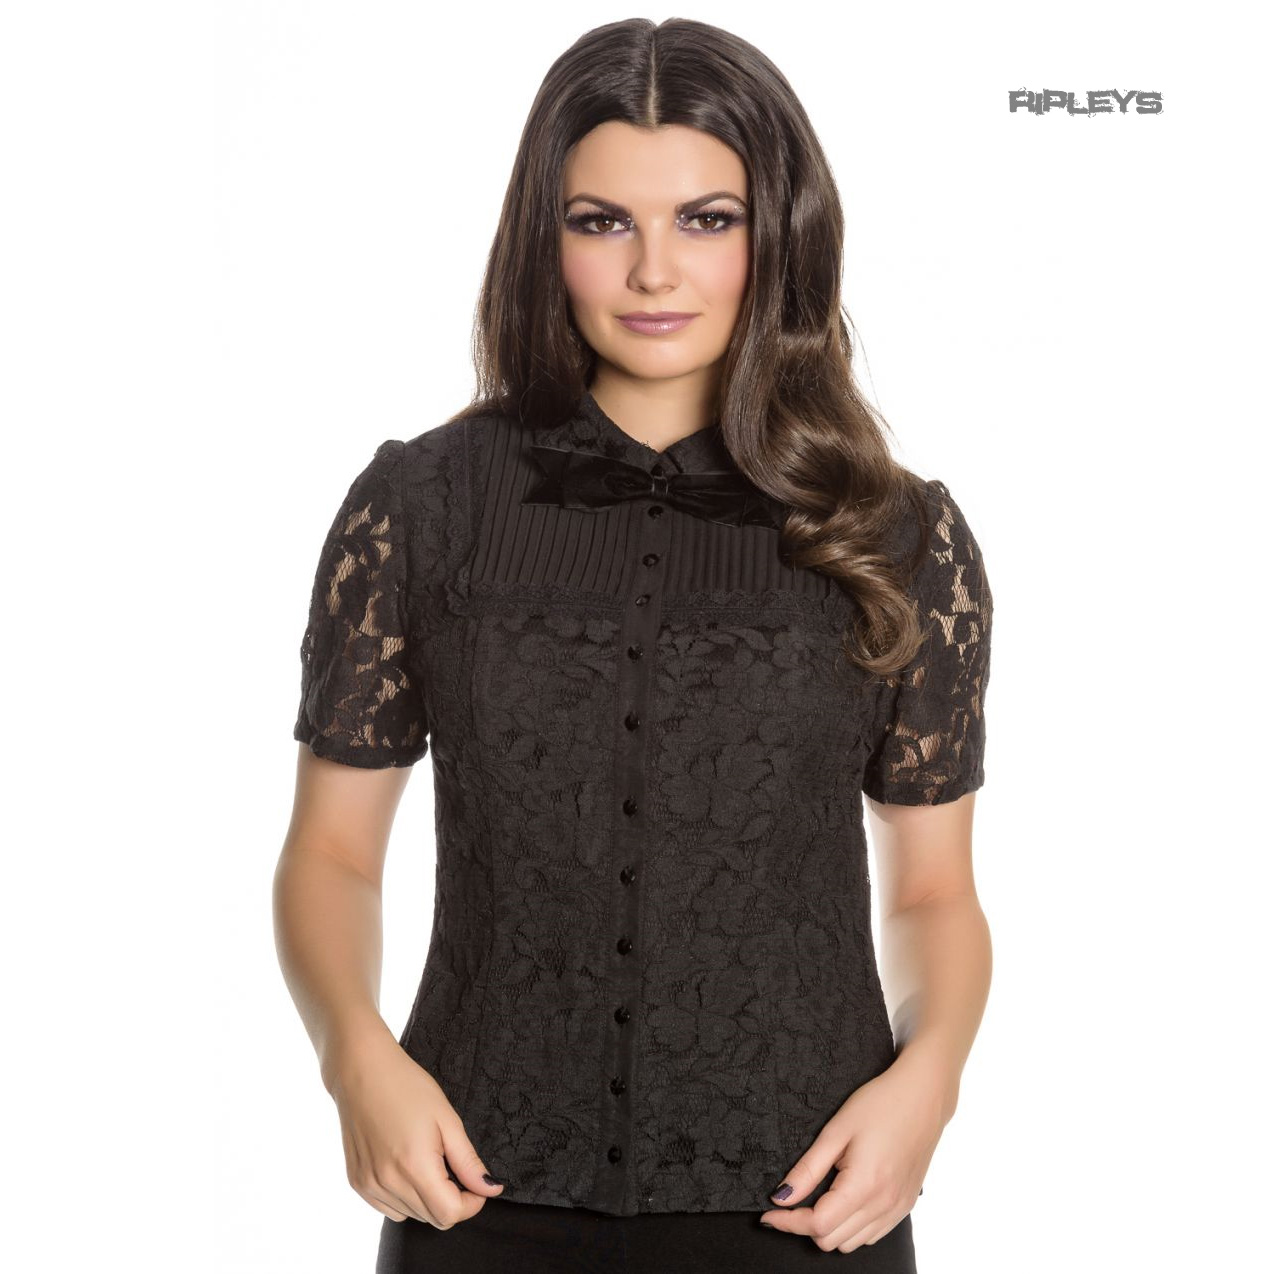 Hell-Bunny-Spin-Doctor-Vampire-Gothic-Shirt-Top-ROWENA-Lace-Blouse-All-Sizes Indexbild 2